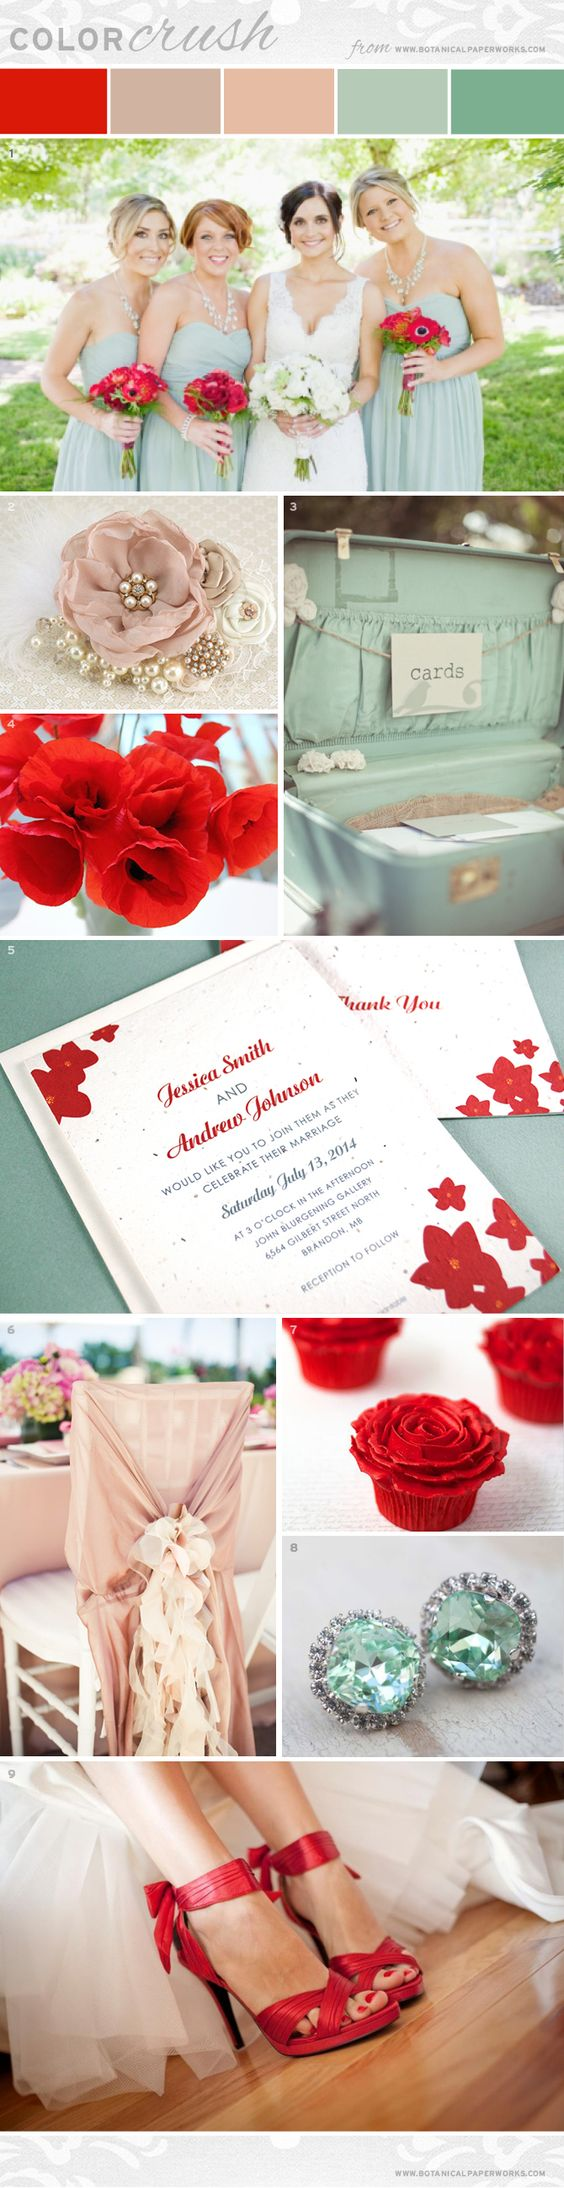 The soft and elegant pastels contrast beautifully with the vibrant and lively poppy red - perfect for all wedding styles.